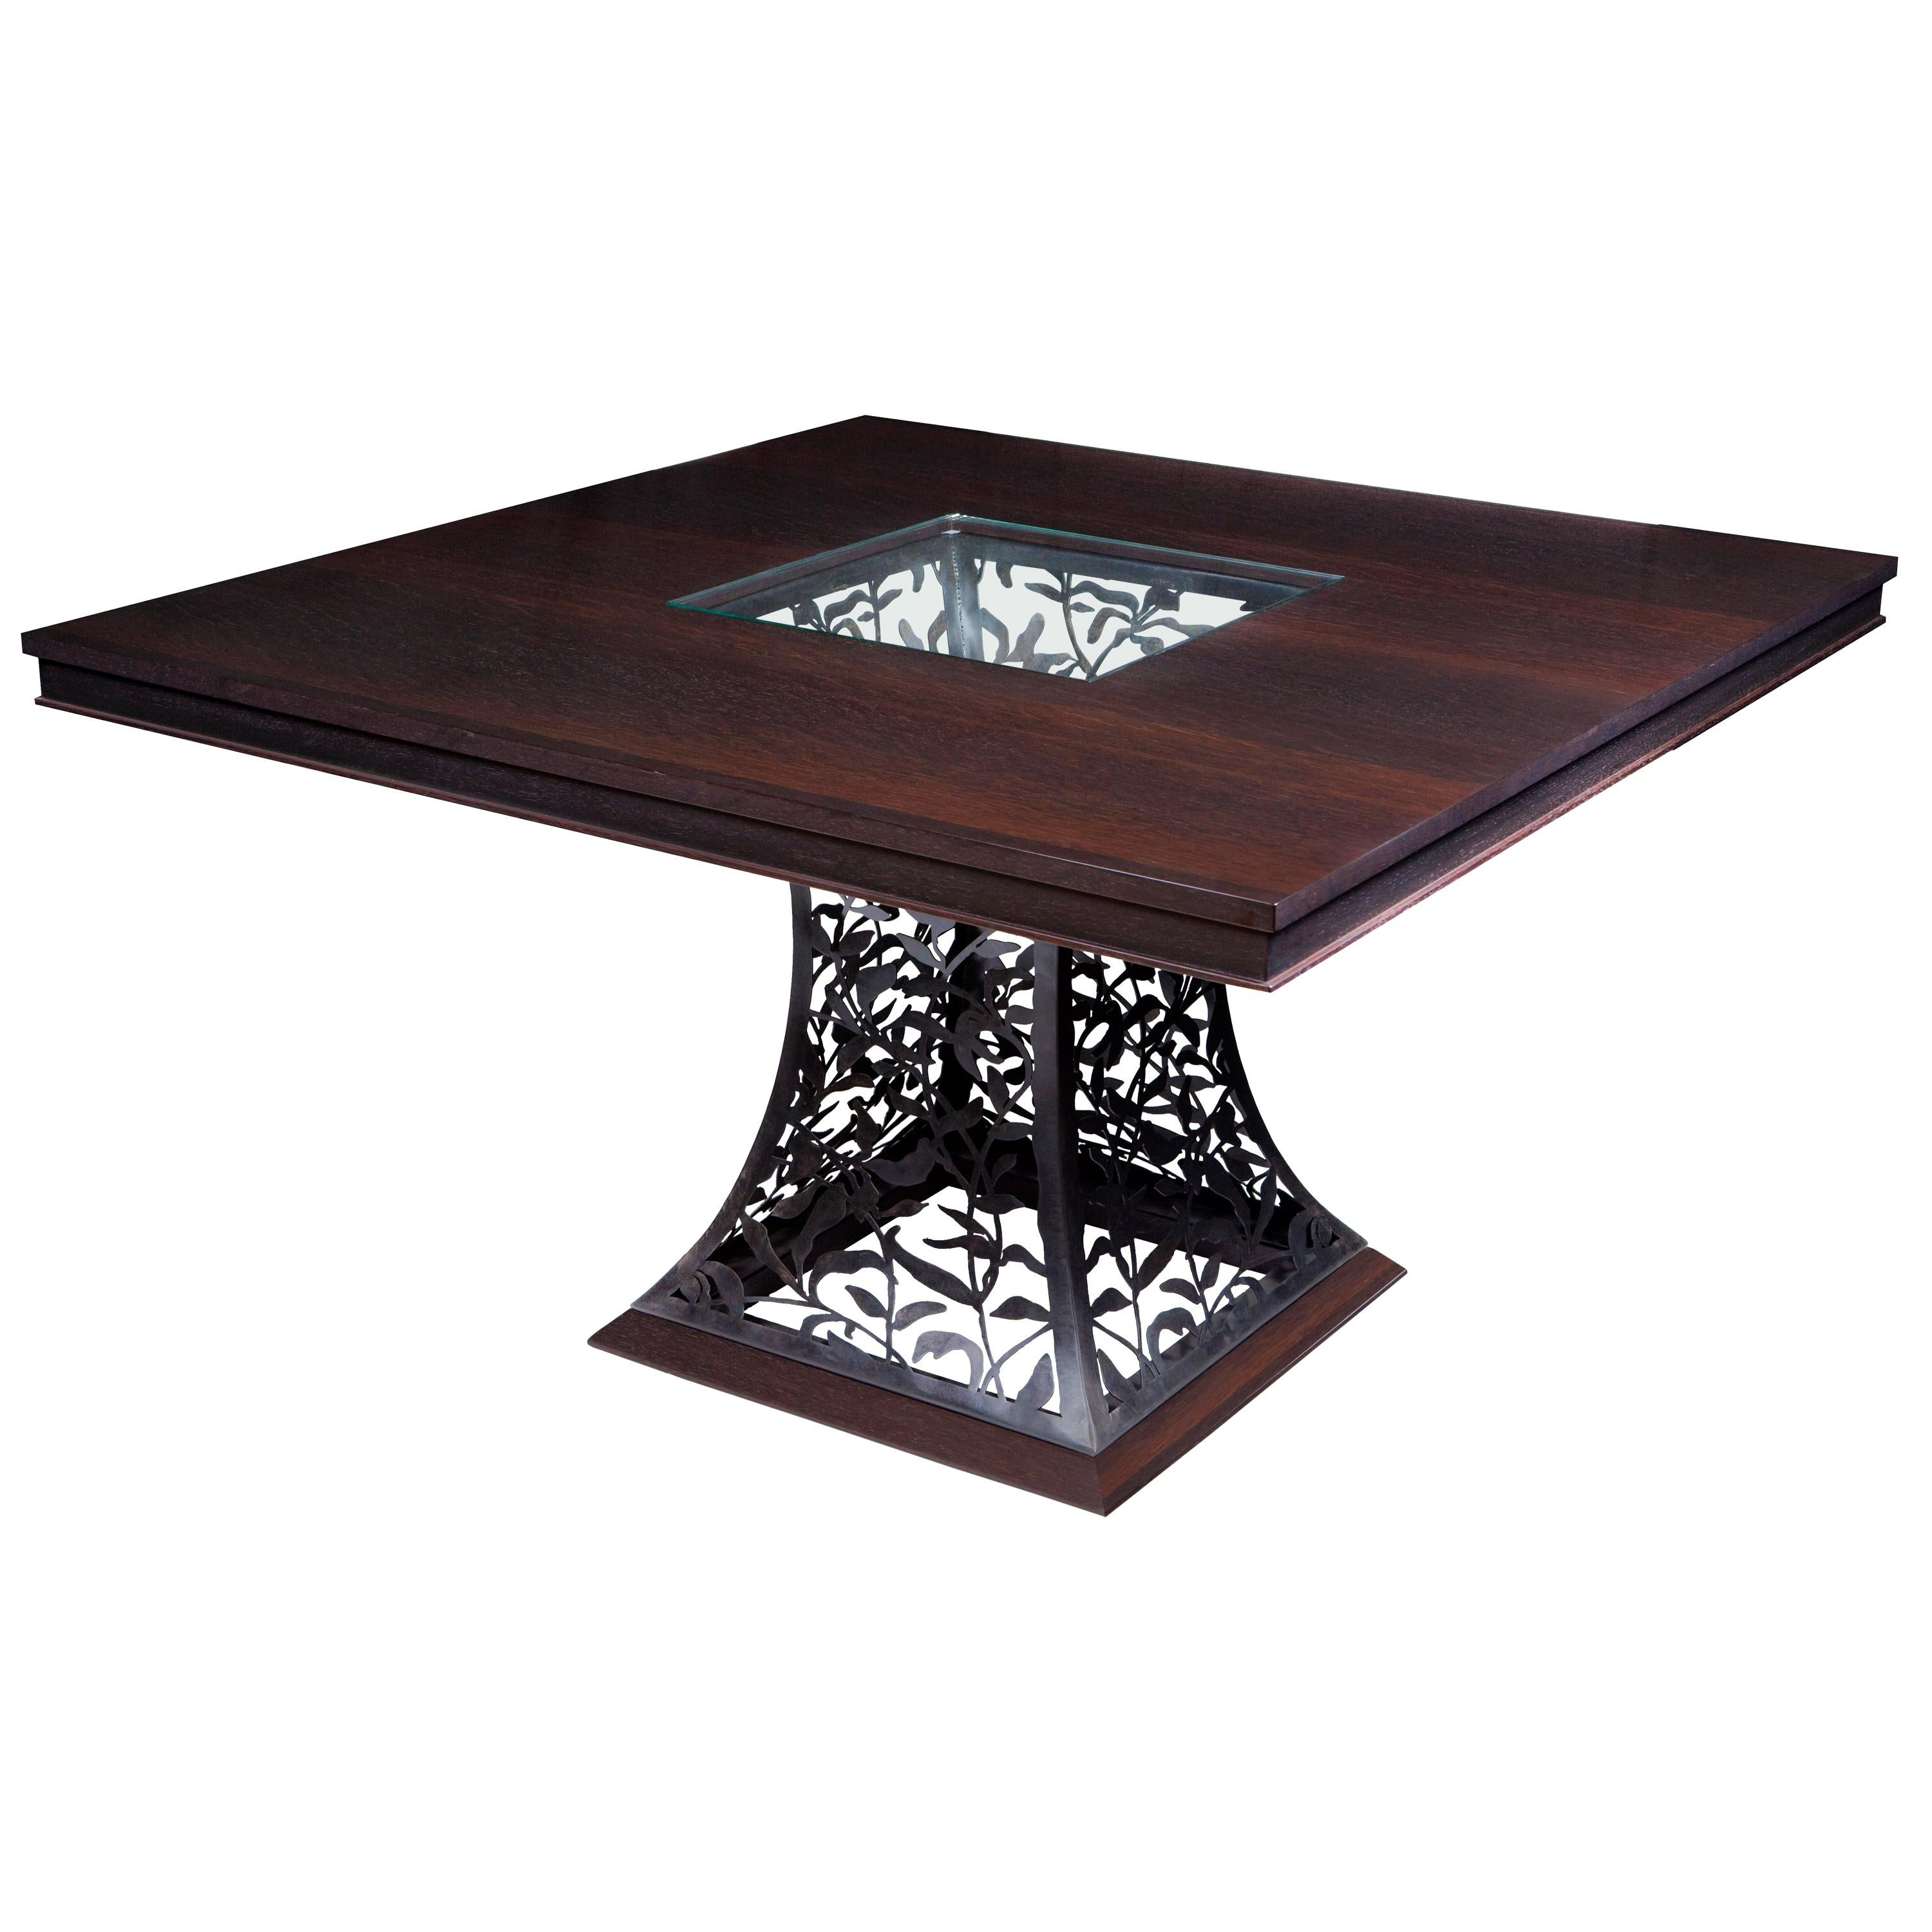 Filigree Steel and Wenge Wood Dining Table